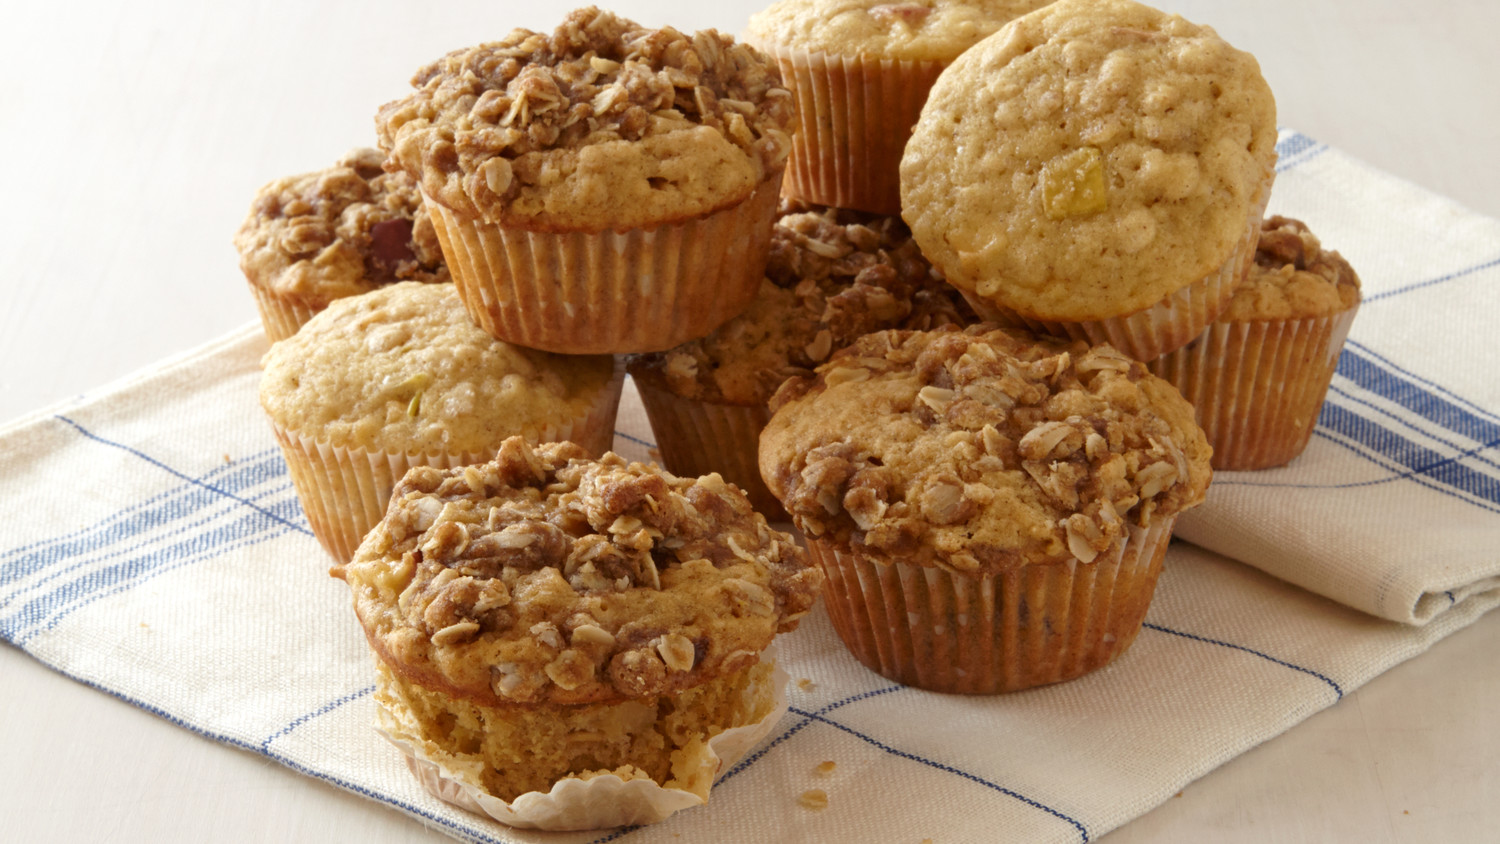 Marvelous Muffin Recipes for Breakfast, Brunch, or Anytime | Martha Stewart